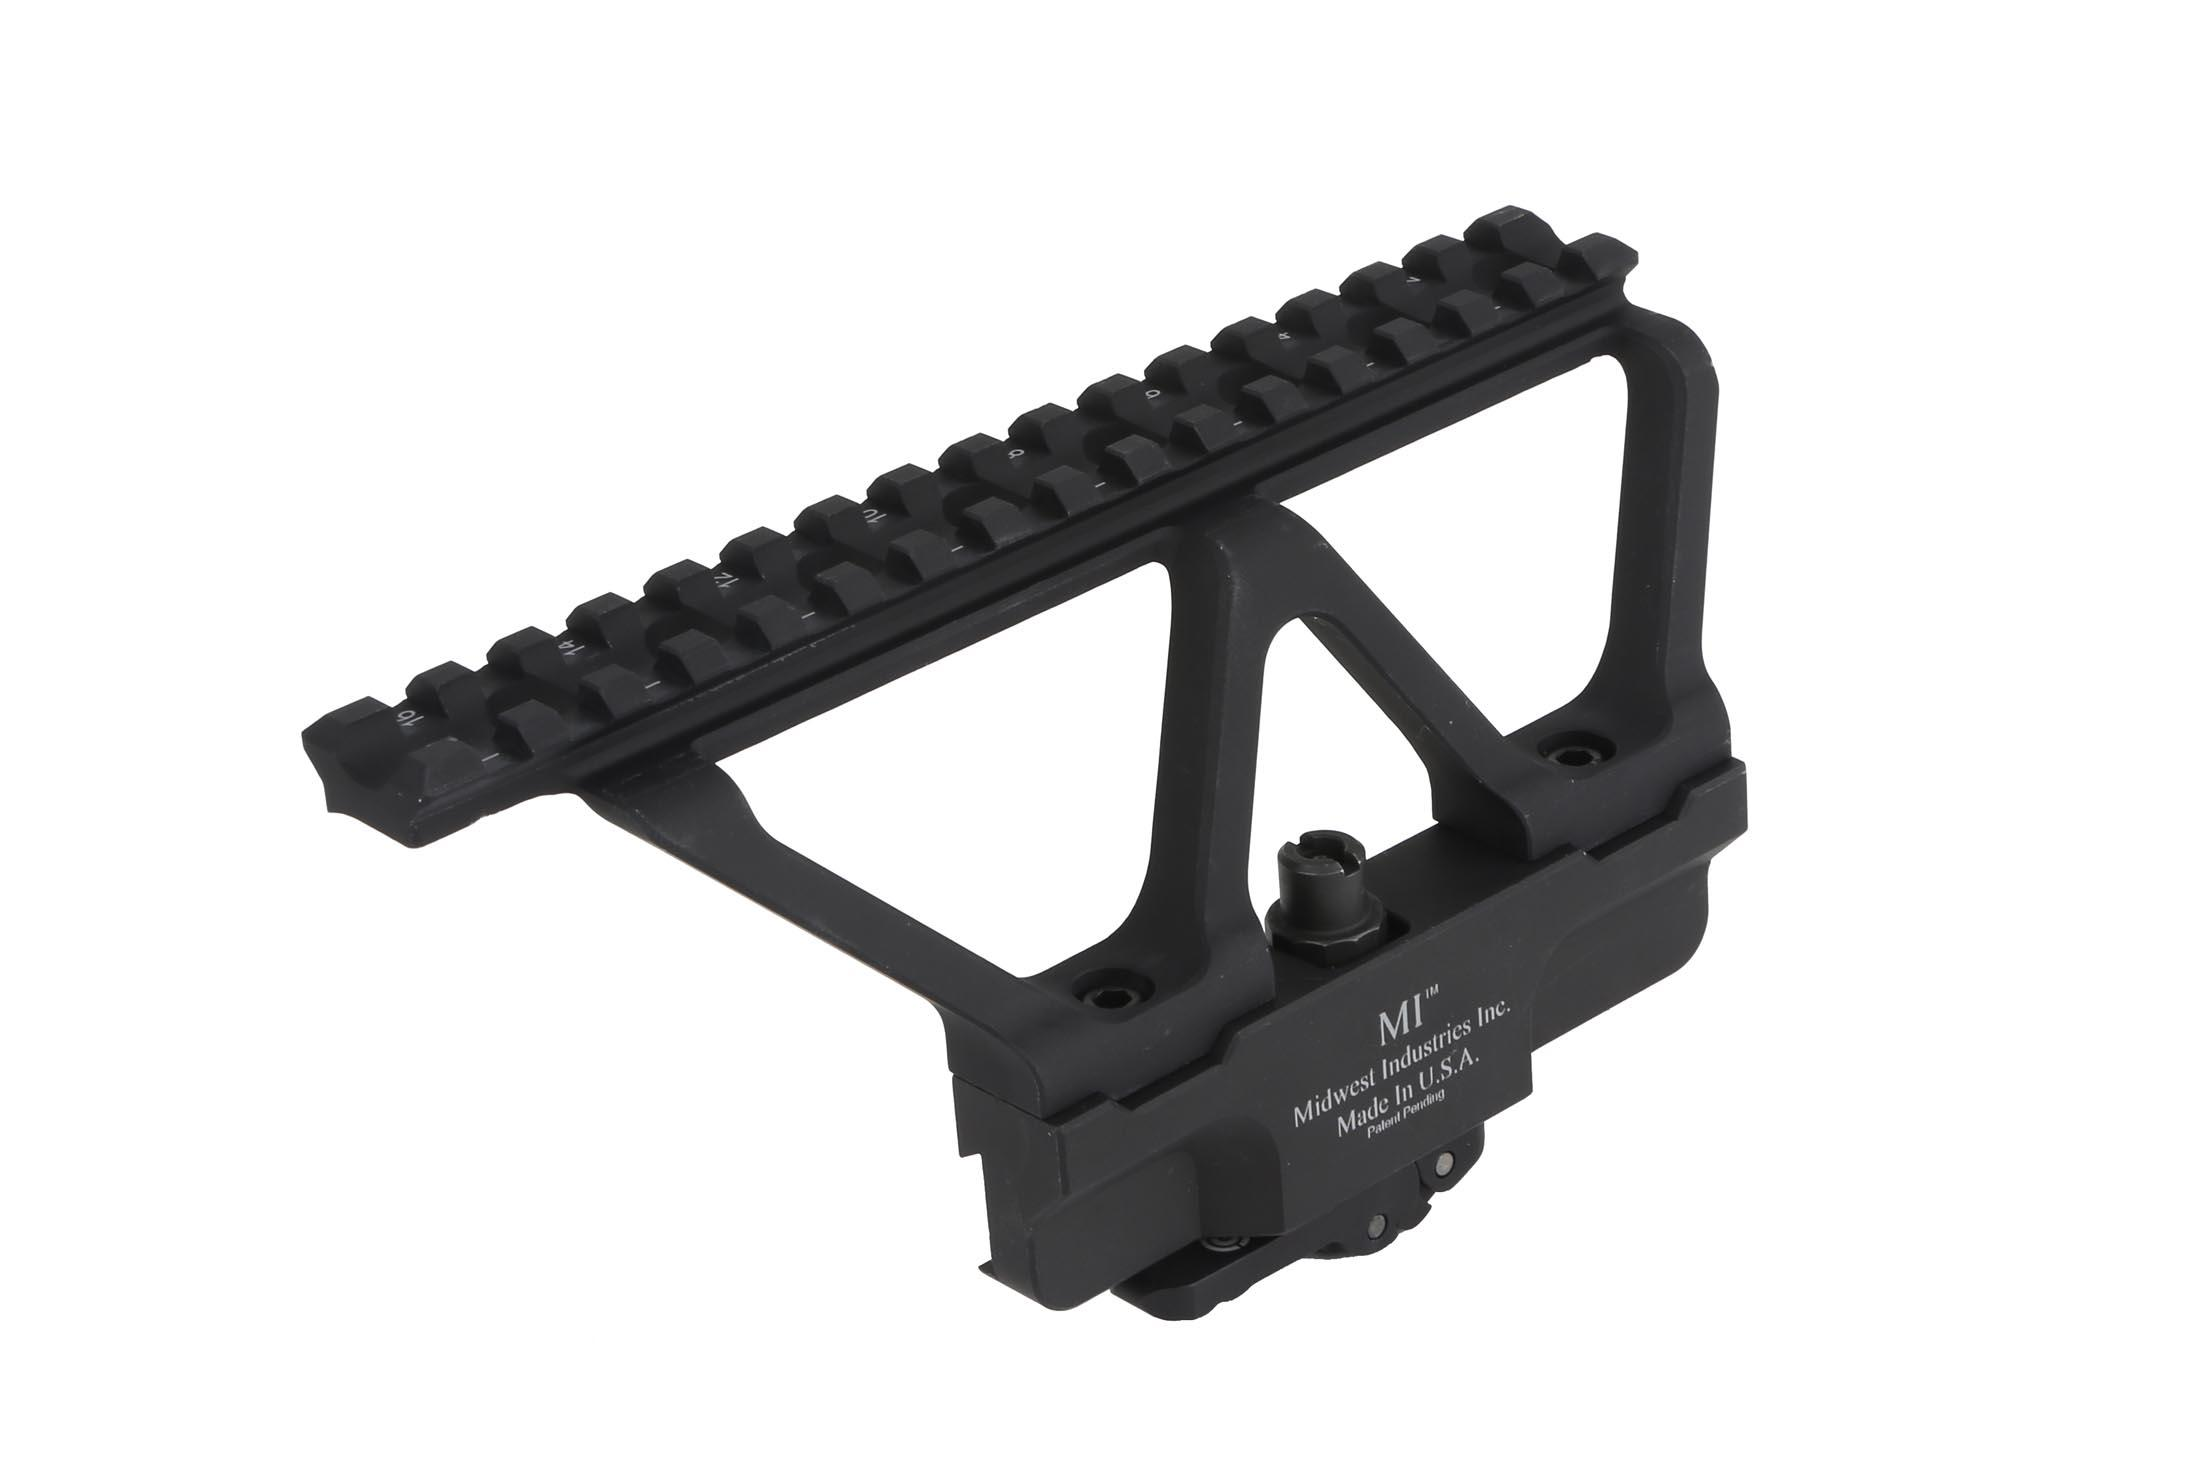 The Midwest Industries AK scope mount attaches directly to the side of your AK47 and has a picatinny rail